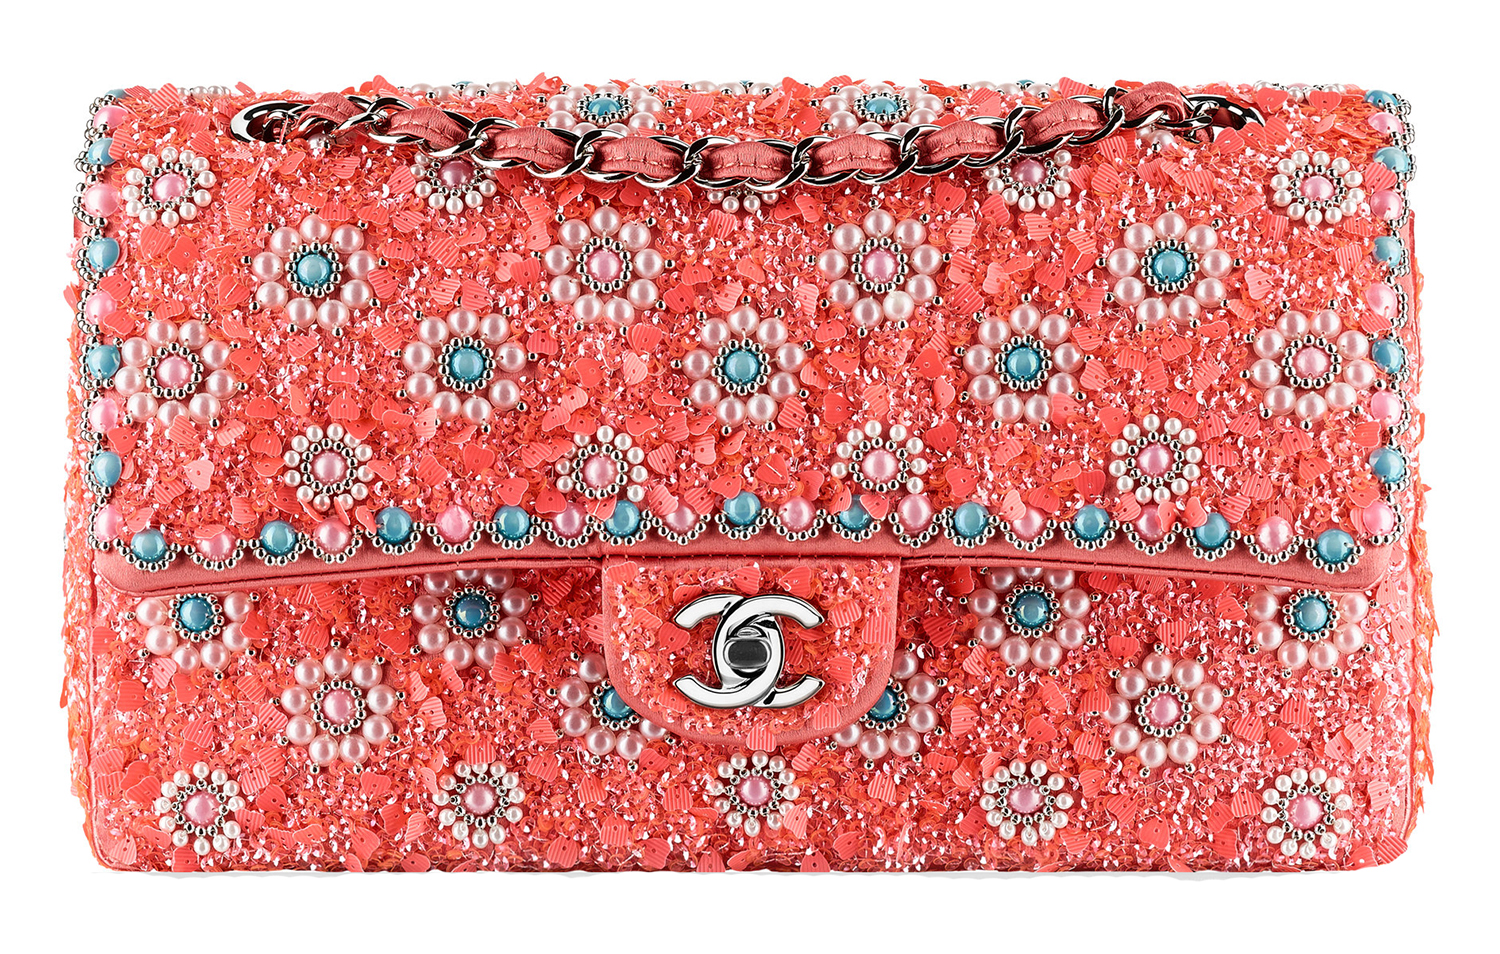 Check Out the Incredible Details on These Beaded Chanel Bags ...